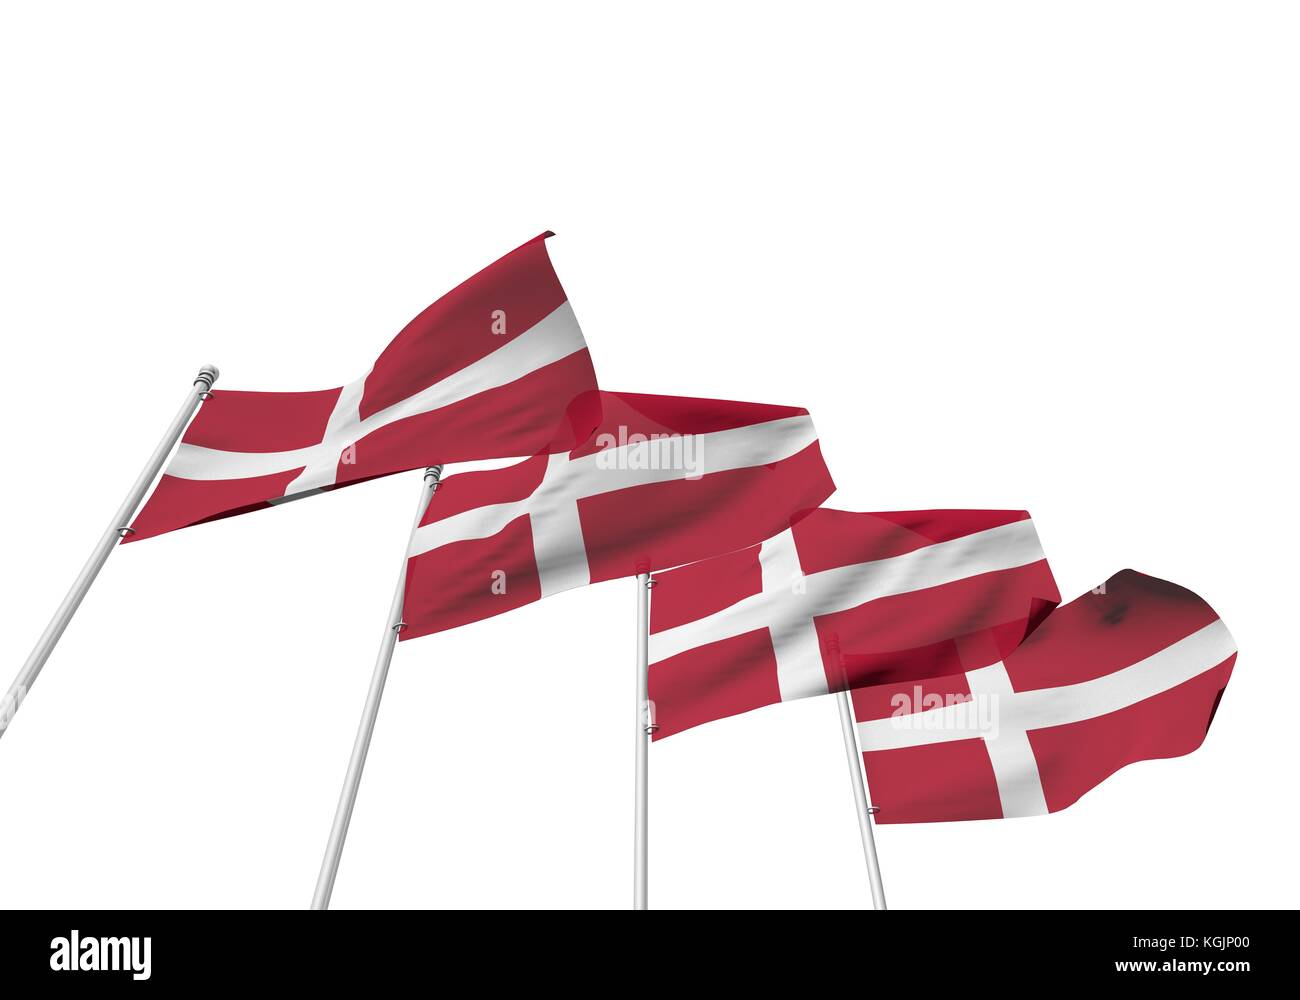 Denmark Flags In A Row With A White Background D Rendering Stock - Denmark flags